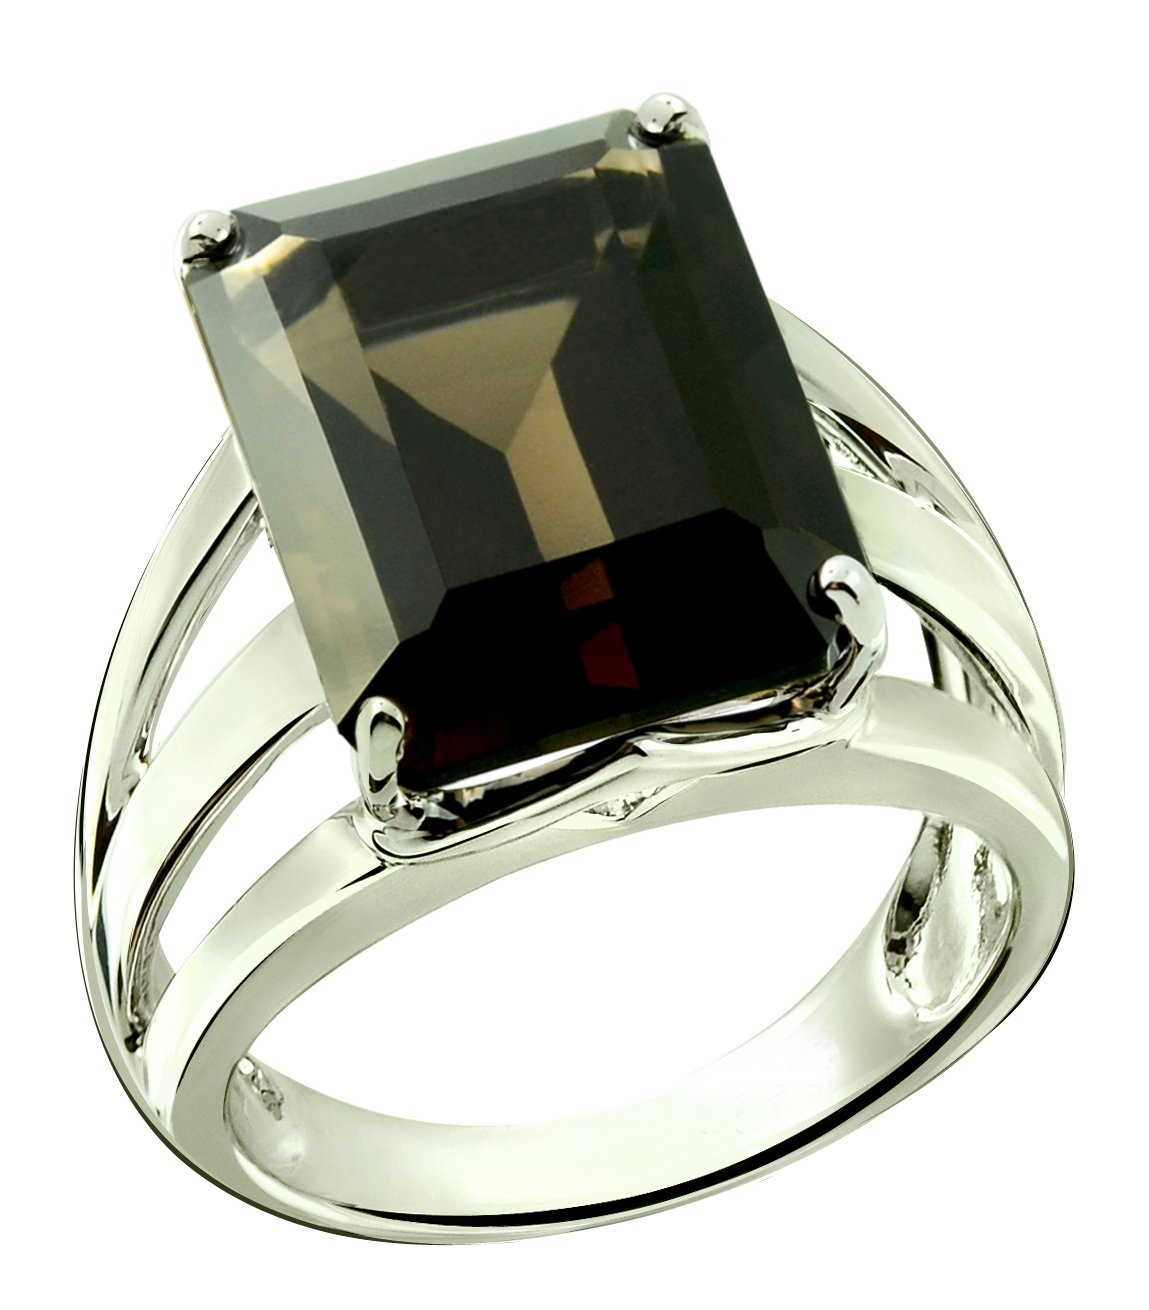 RB Gems Sterling Silver 925 STATEMENT Ring GENUINE GEMSTONE Octagon 16x12 mm with Rhodium-Plated Finish (12, smoky-quartz)